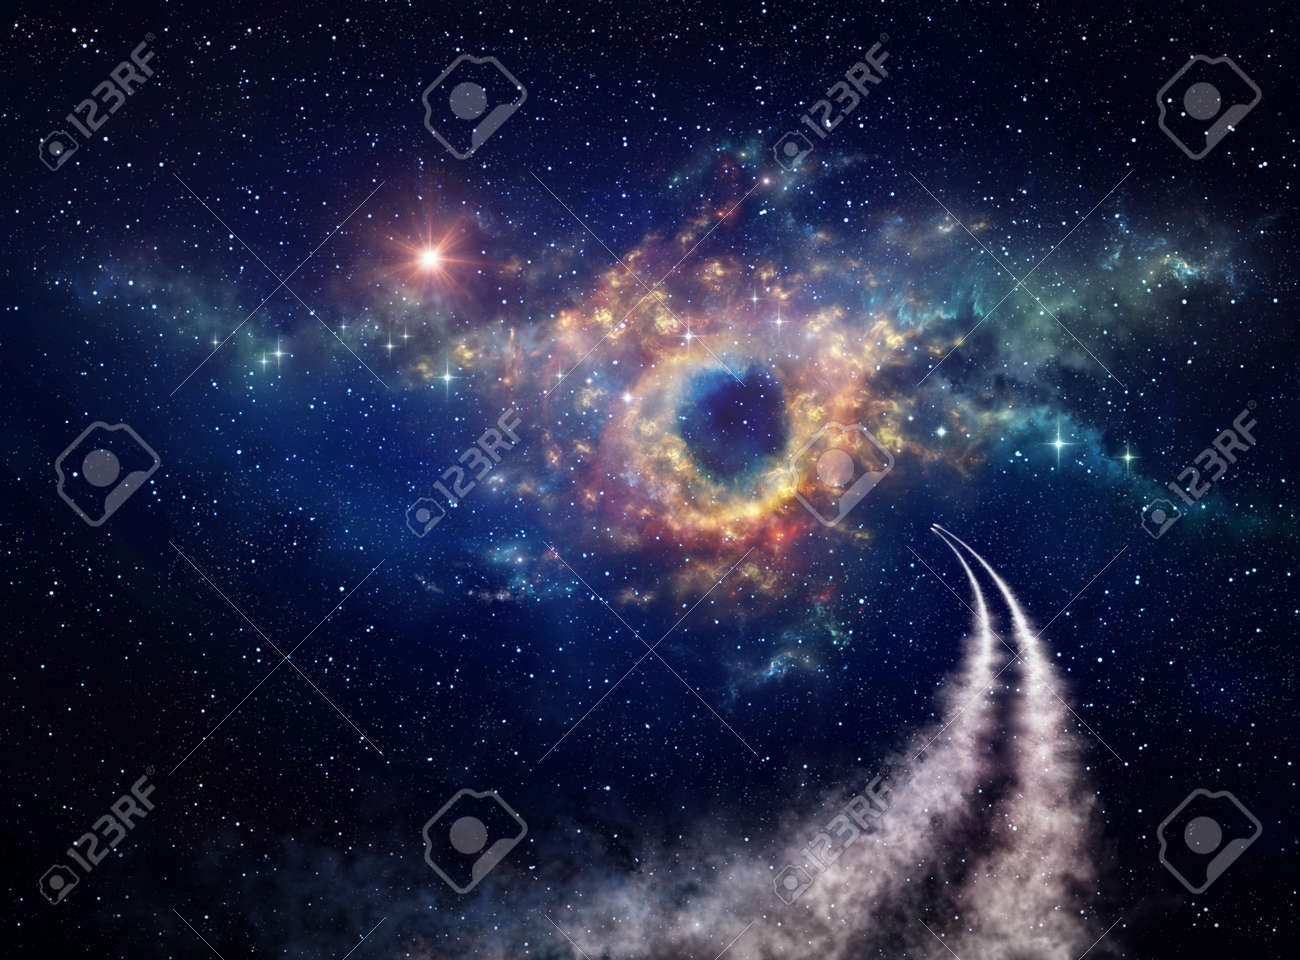 Spaceships traveling in universe toward nebula and stars clusters for constellations discovery. Shuttle journey into deep space. - 161508837